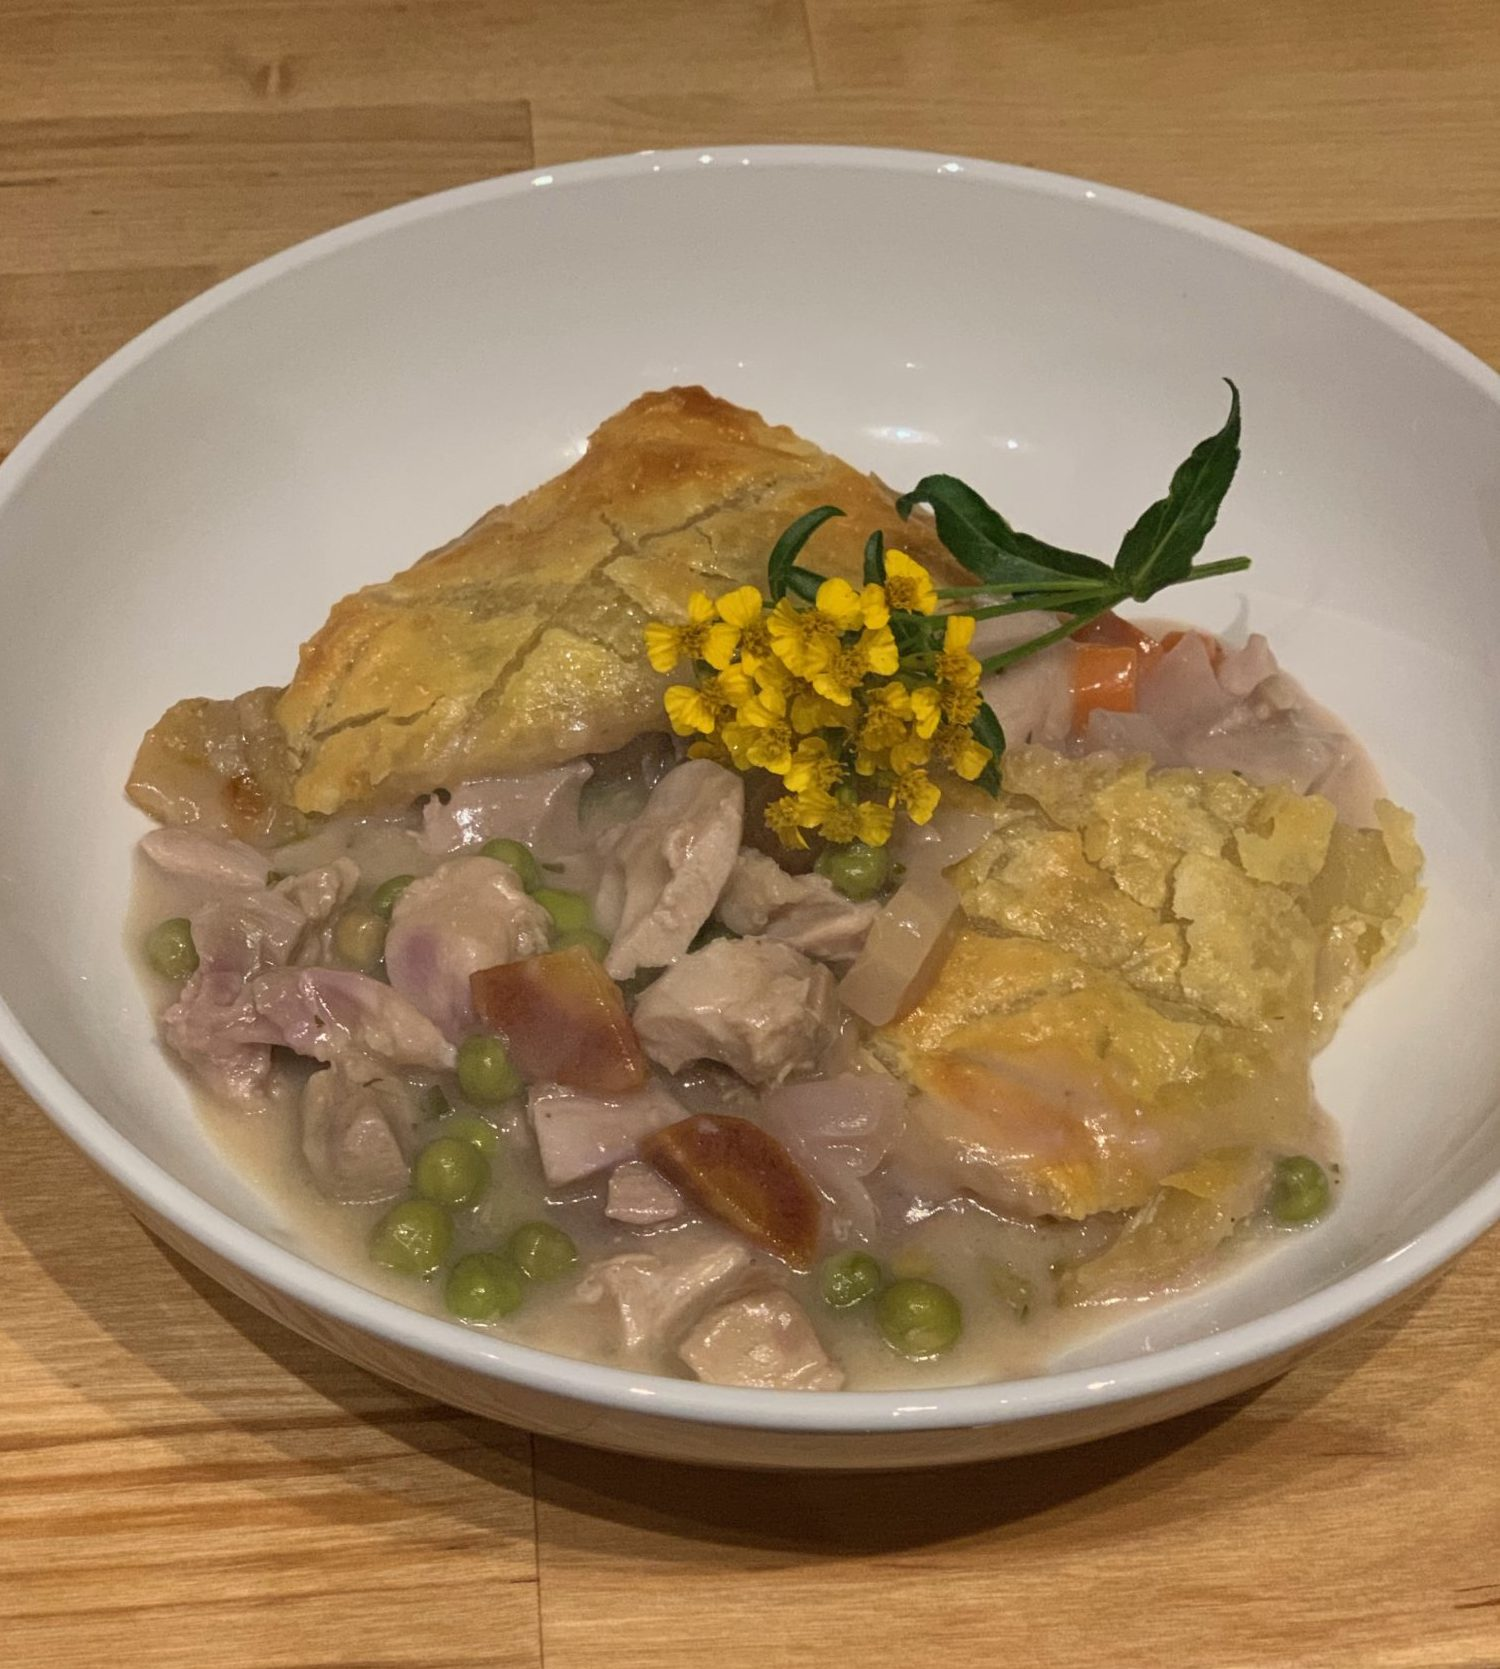 Showing the finished dish of Chicken Potpie